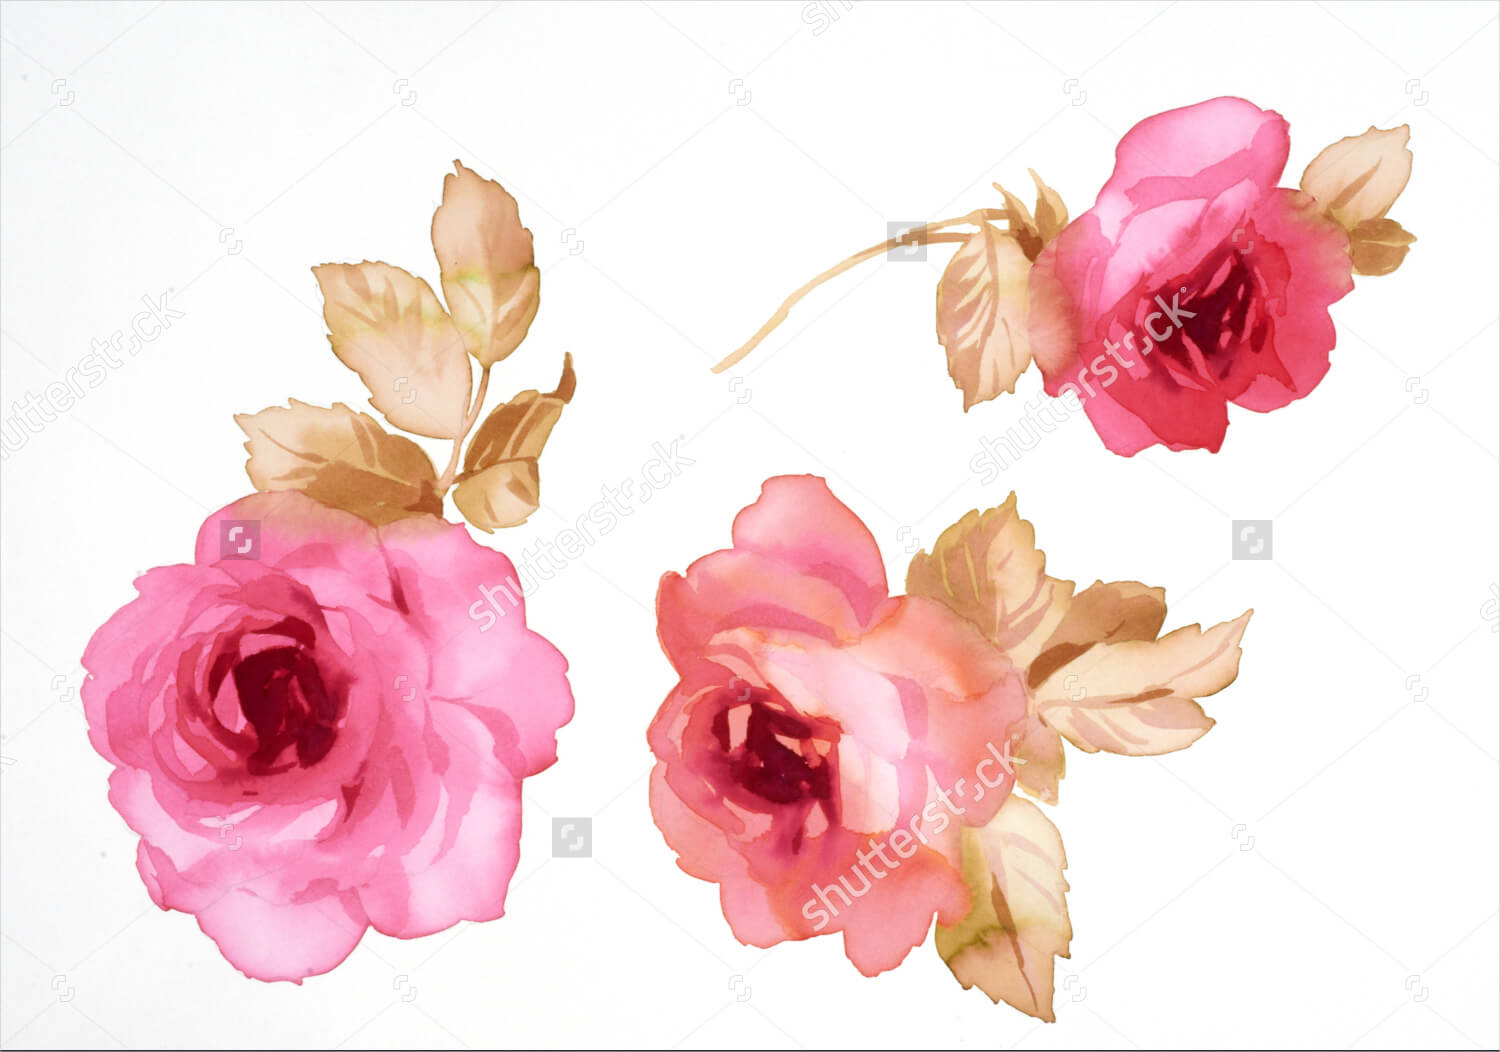 Illustration of Rose Watercolor Painting